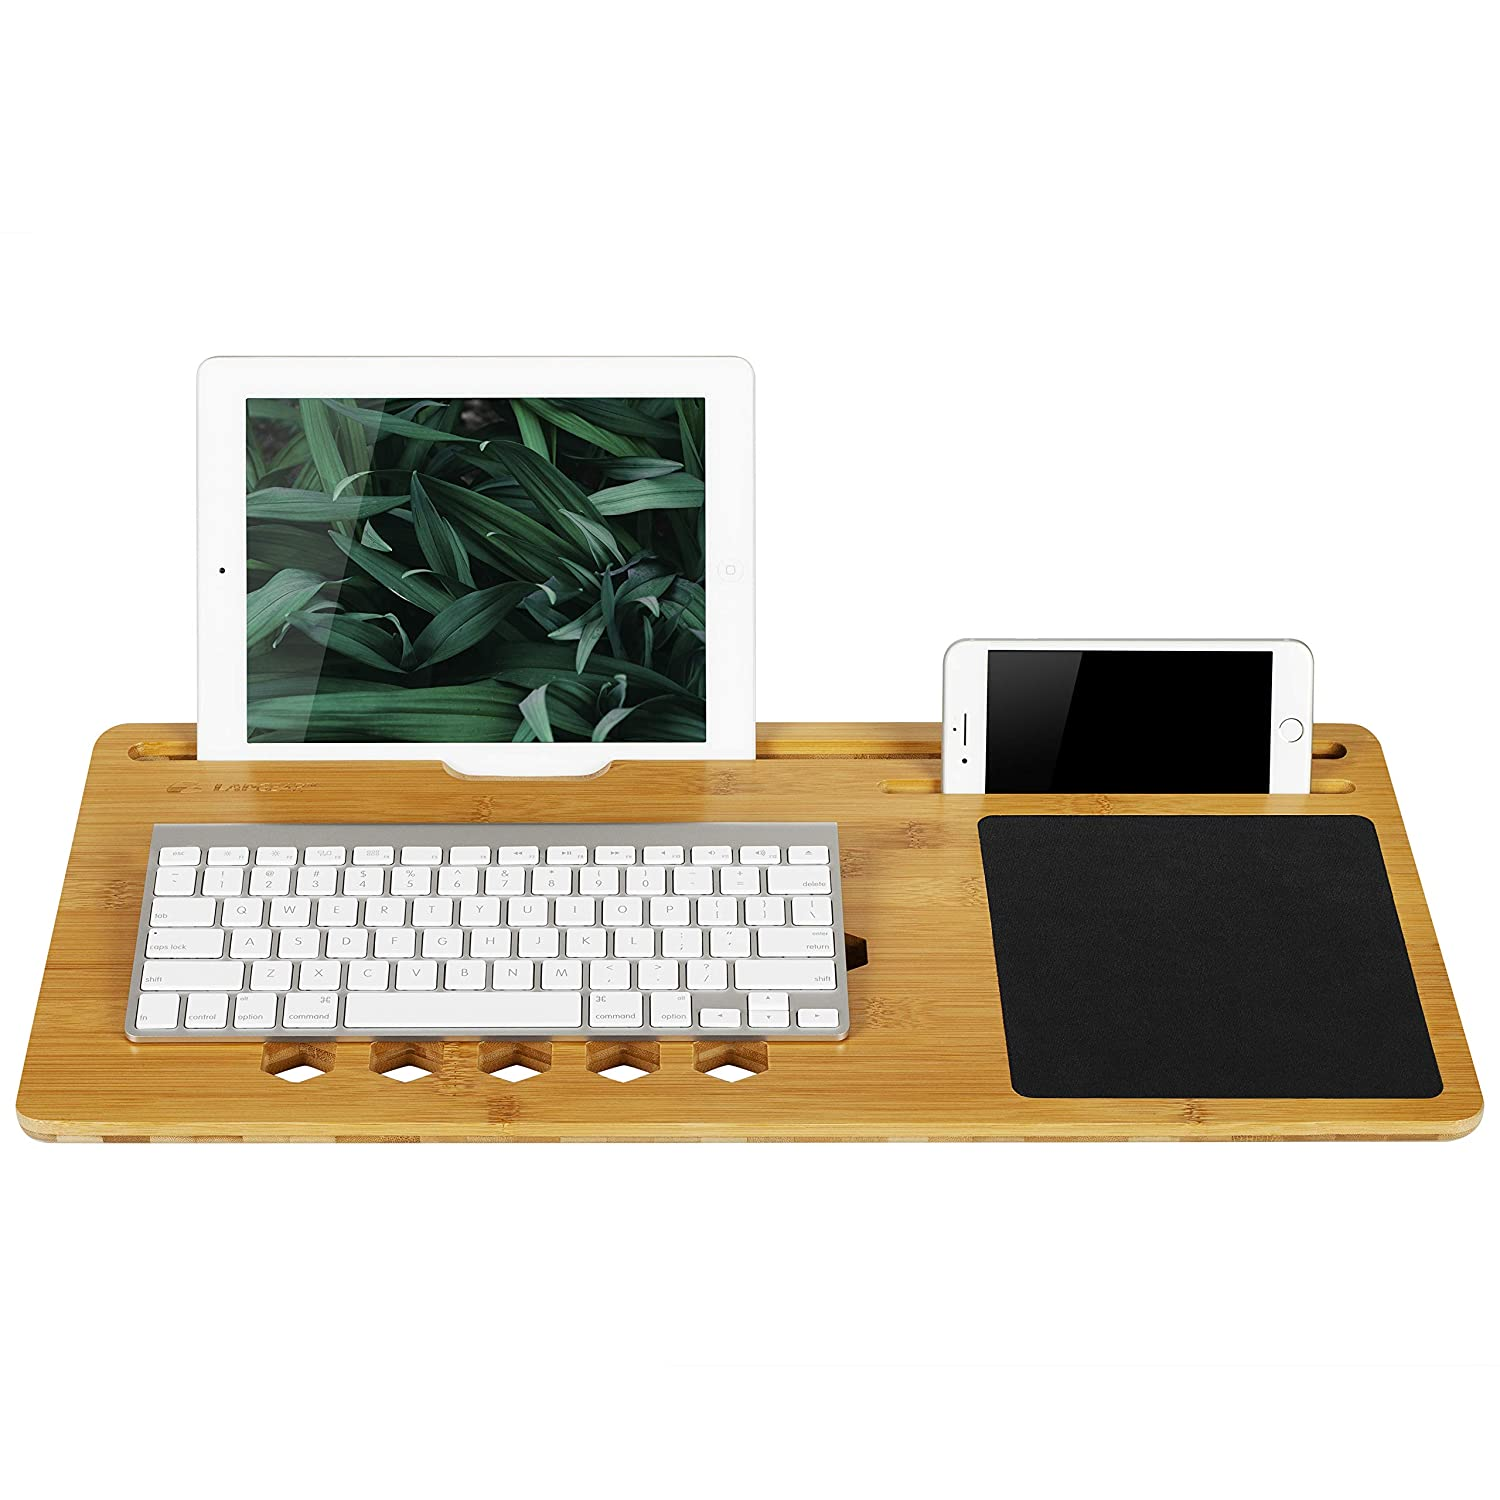 LapGear BamBoard Lap Desk with Phone or Tablet Holder - Natural Bamboo - Fits up to 15.6 Inch Laptops and Most Tablets - Style No. 77001